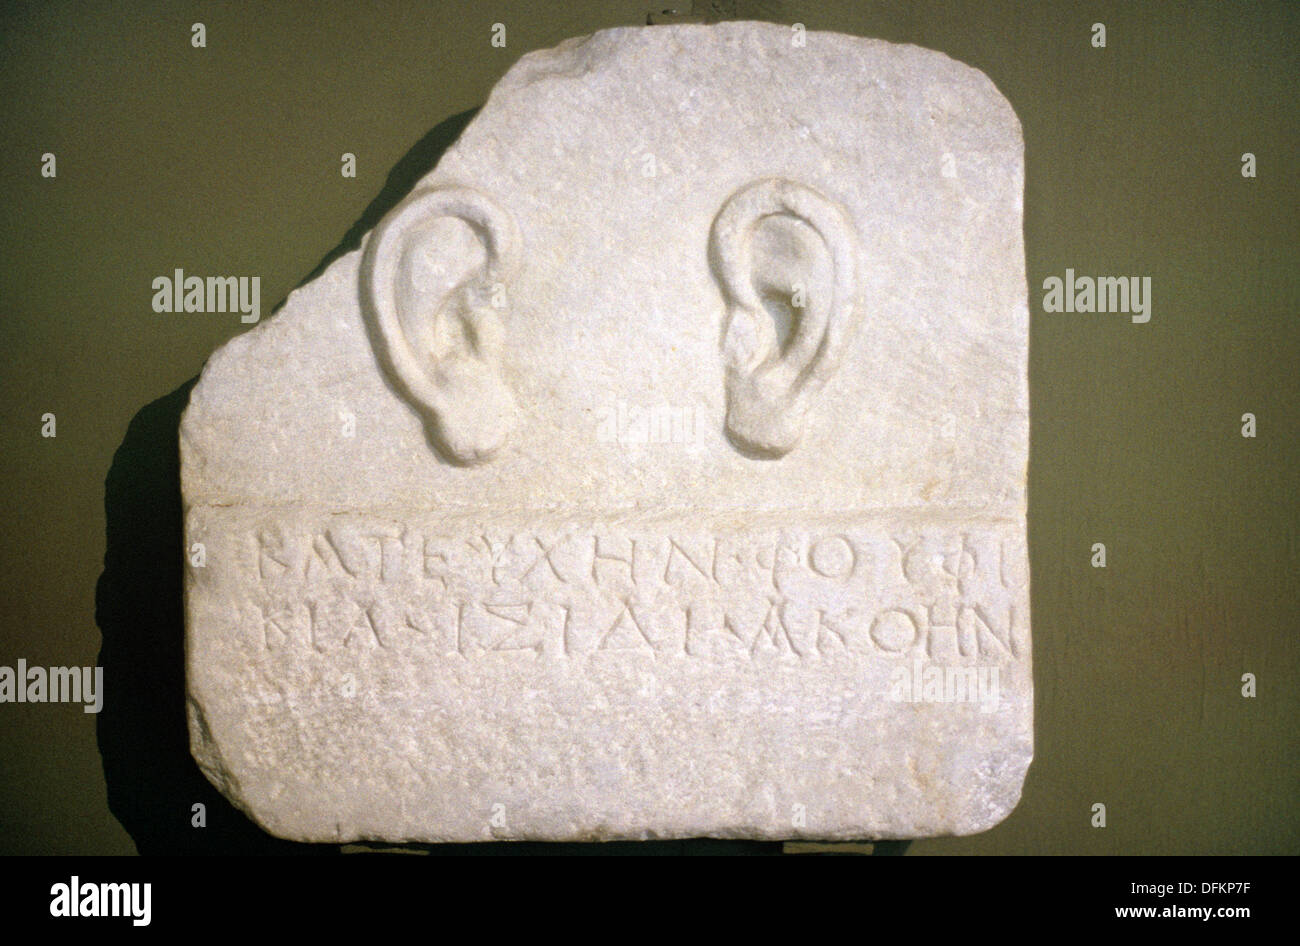 Carved Ears on Votive Offering Asking for Wishes to be Heard and Fulfilled. Ancient Greece. - Stock Image